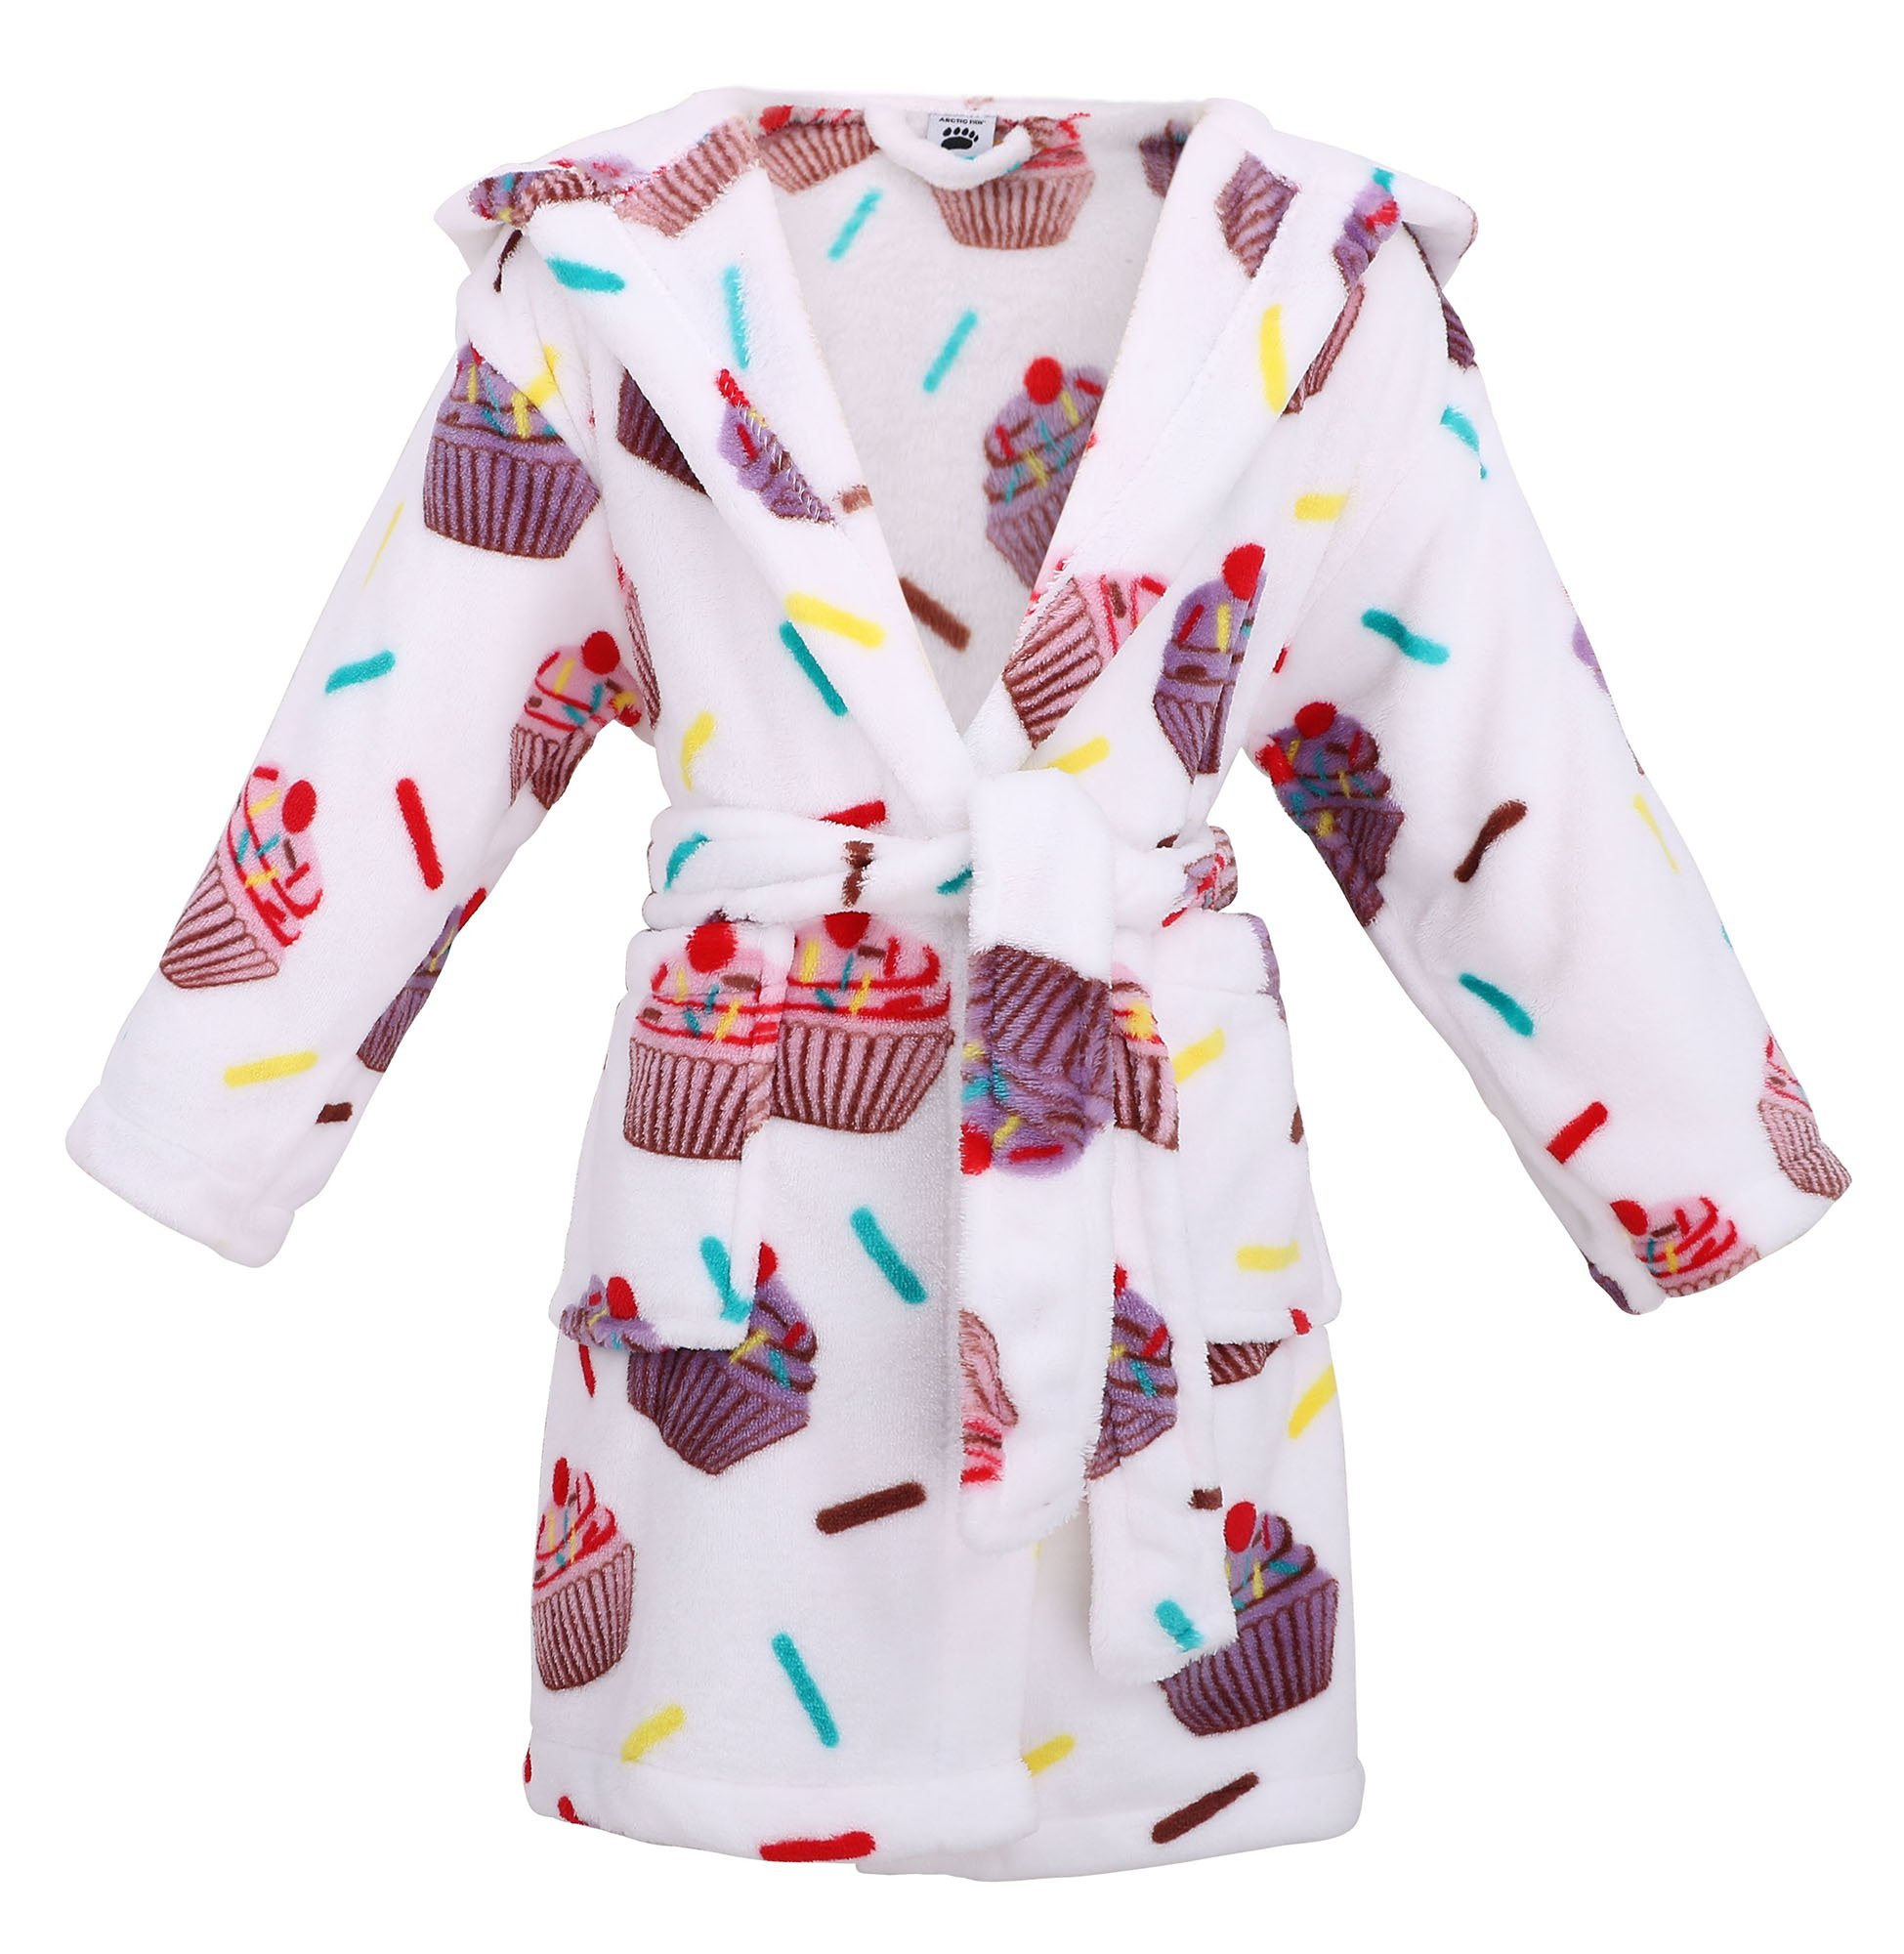 Girls Hooded Printed Flannel Fleece Bathrobe Girls Robe with Pockets,Cupcakes,M by Arctic Paw (Image #1)